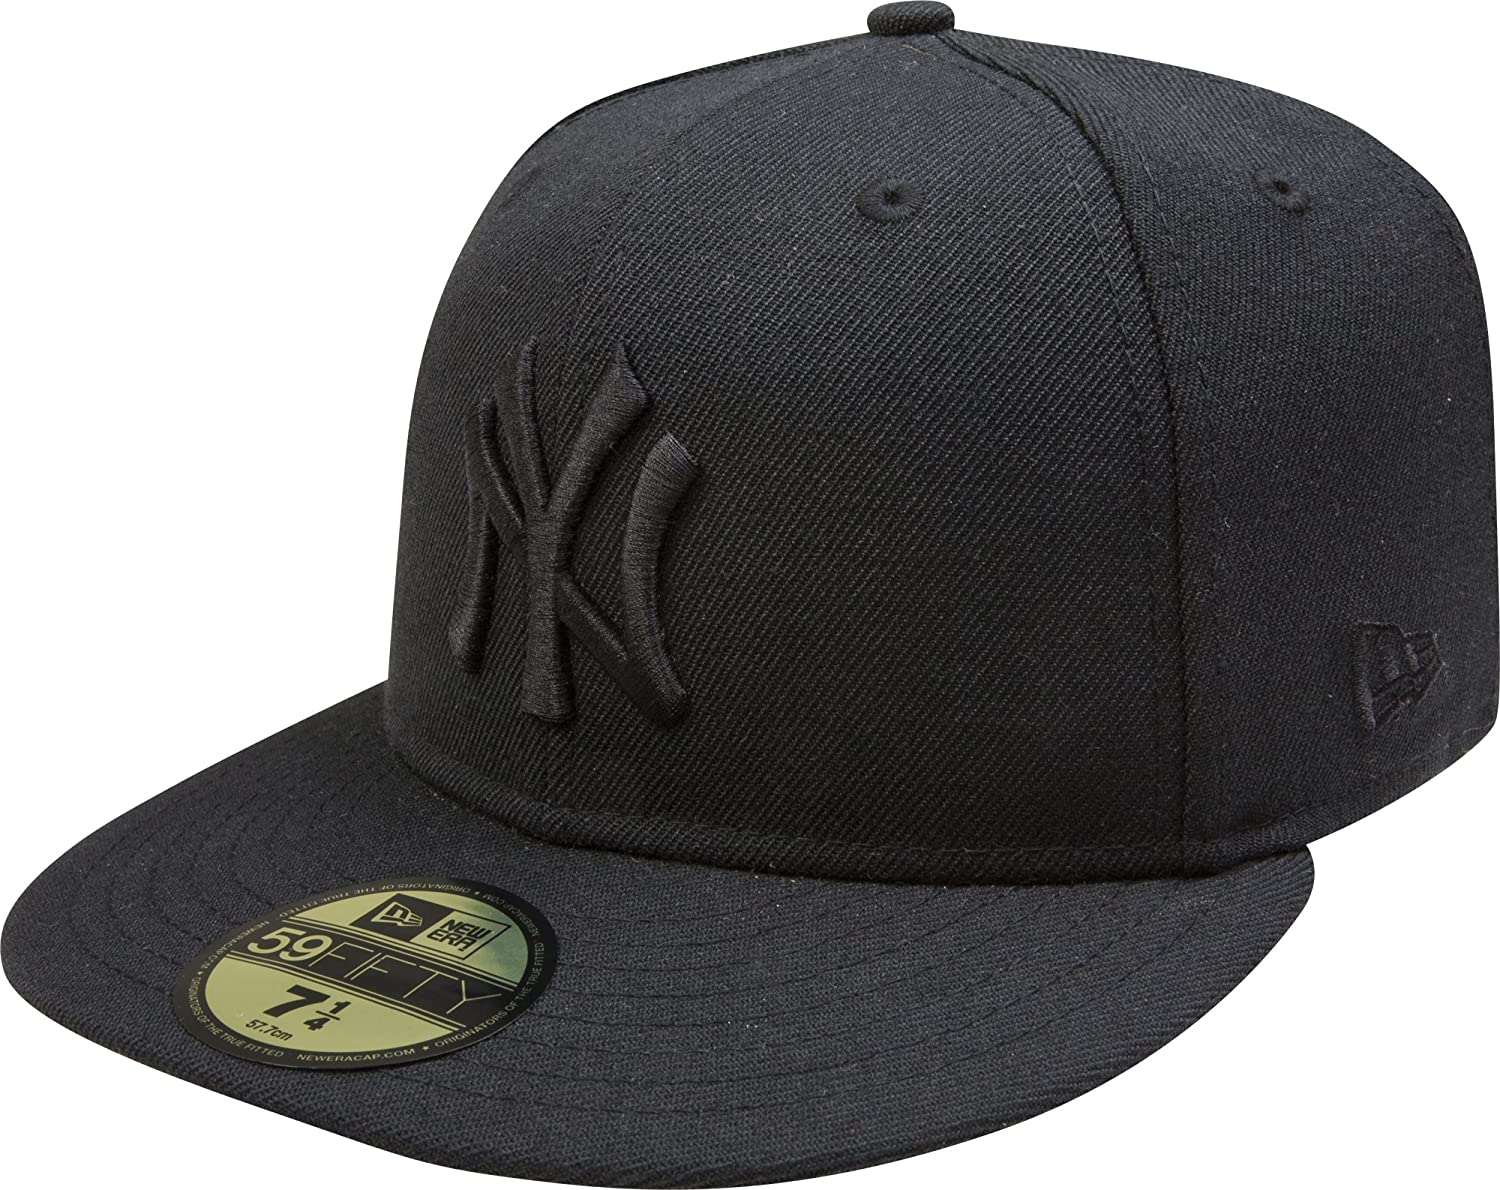 Amazon.com  New York Yankees Black On Black 59FIFTY Cap   Hat  Sports    Outdoors 4a2a81a0ea6d